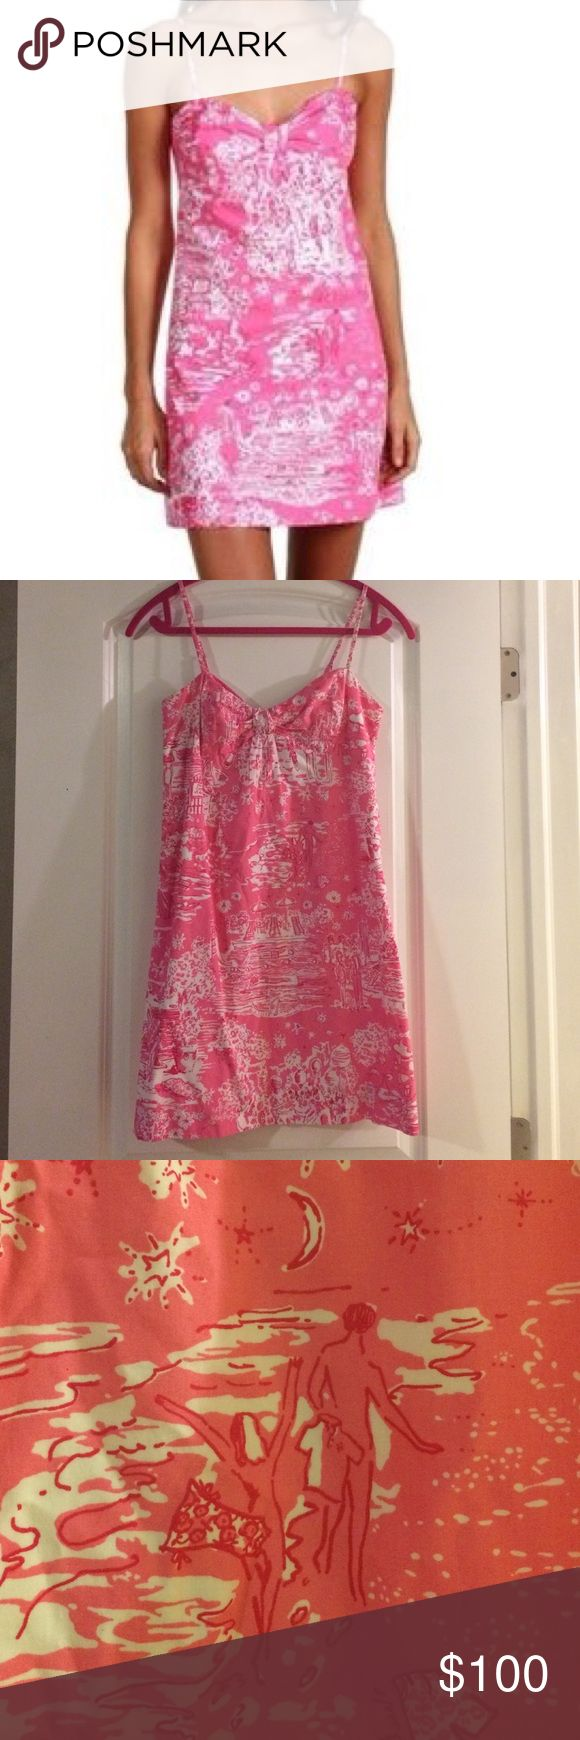 Lilly Pulitzer Skinny Dippin' Kelley dress Very good used condition due to not being the first owner.  Lilly lace intact.  Excellent print placement.  Size 4.  Cheaper on m Lilly Pulitzer Dresses